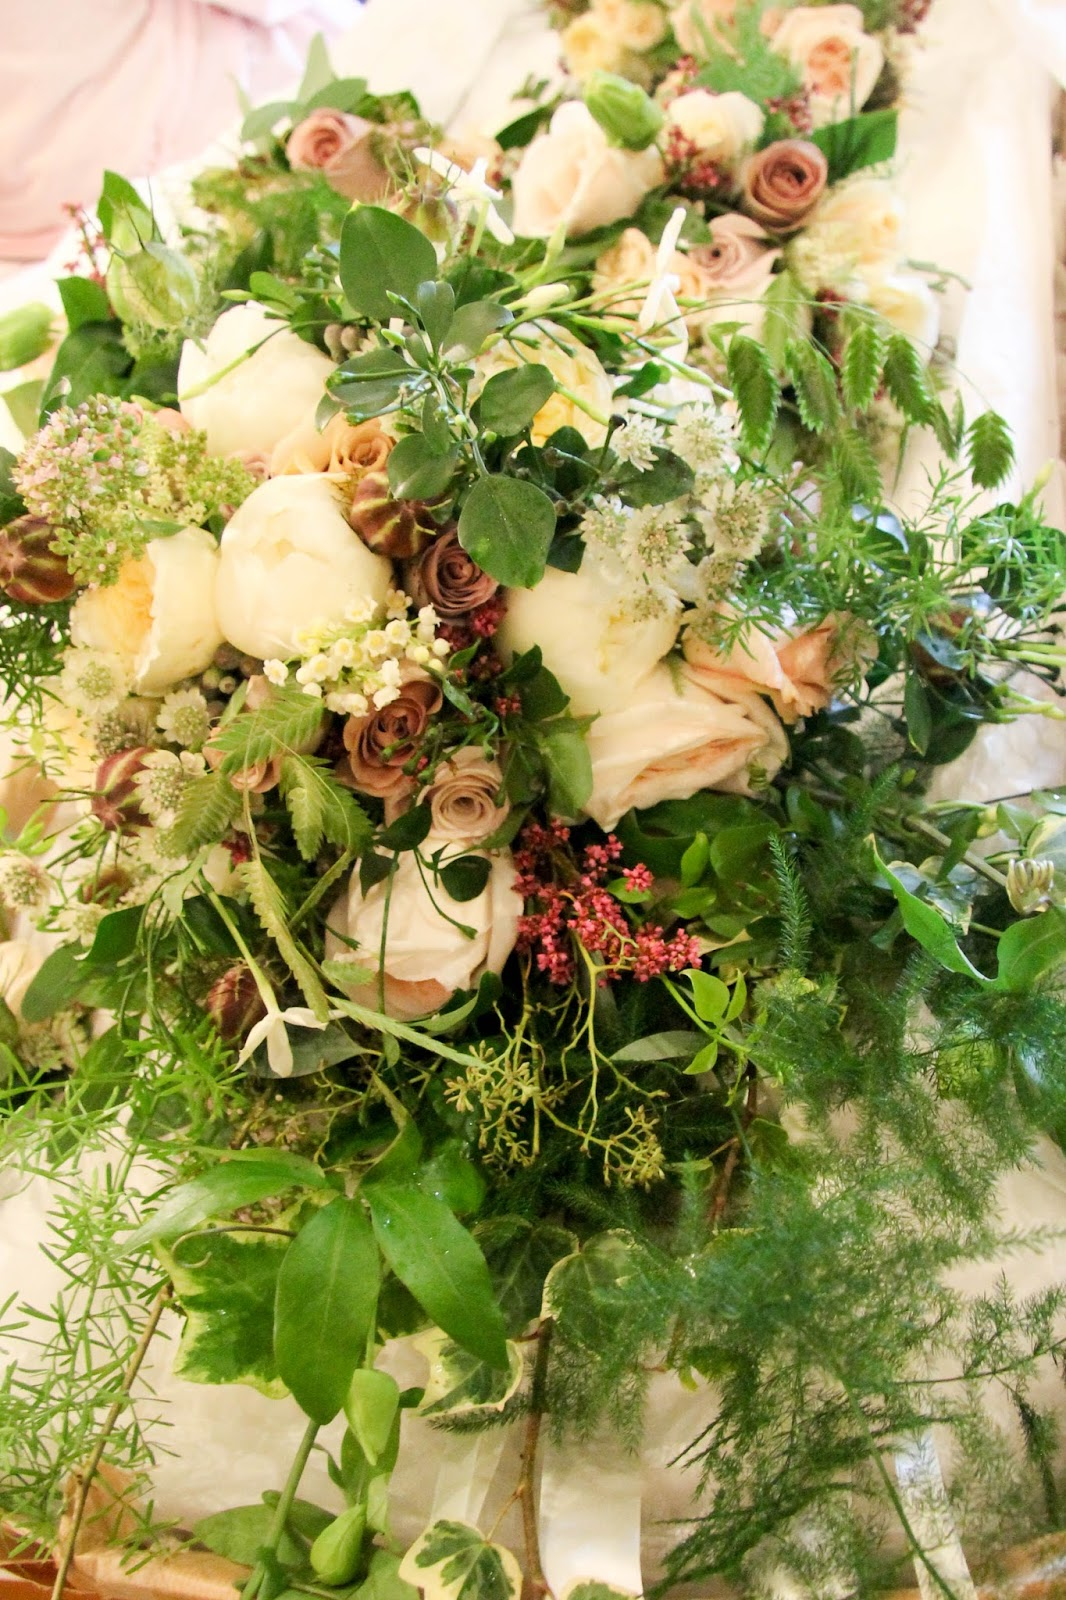 Heather johns wedding flowers at st annes singleton singleton lily of the valley scented jasmine heather our brides namesake peonies roses nigella dill astrantia grasses and passion flowers and astilbe izmirmasajfo